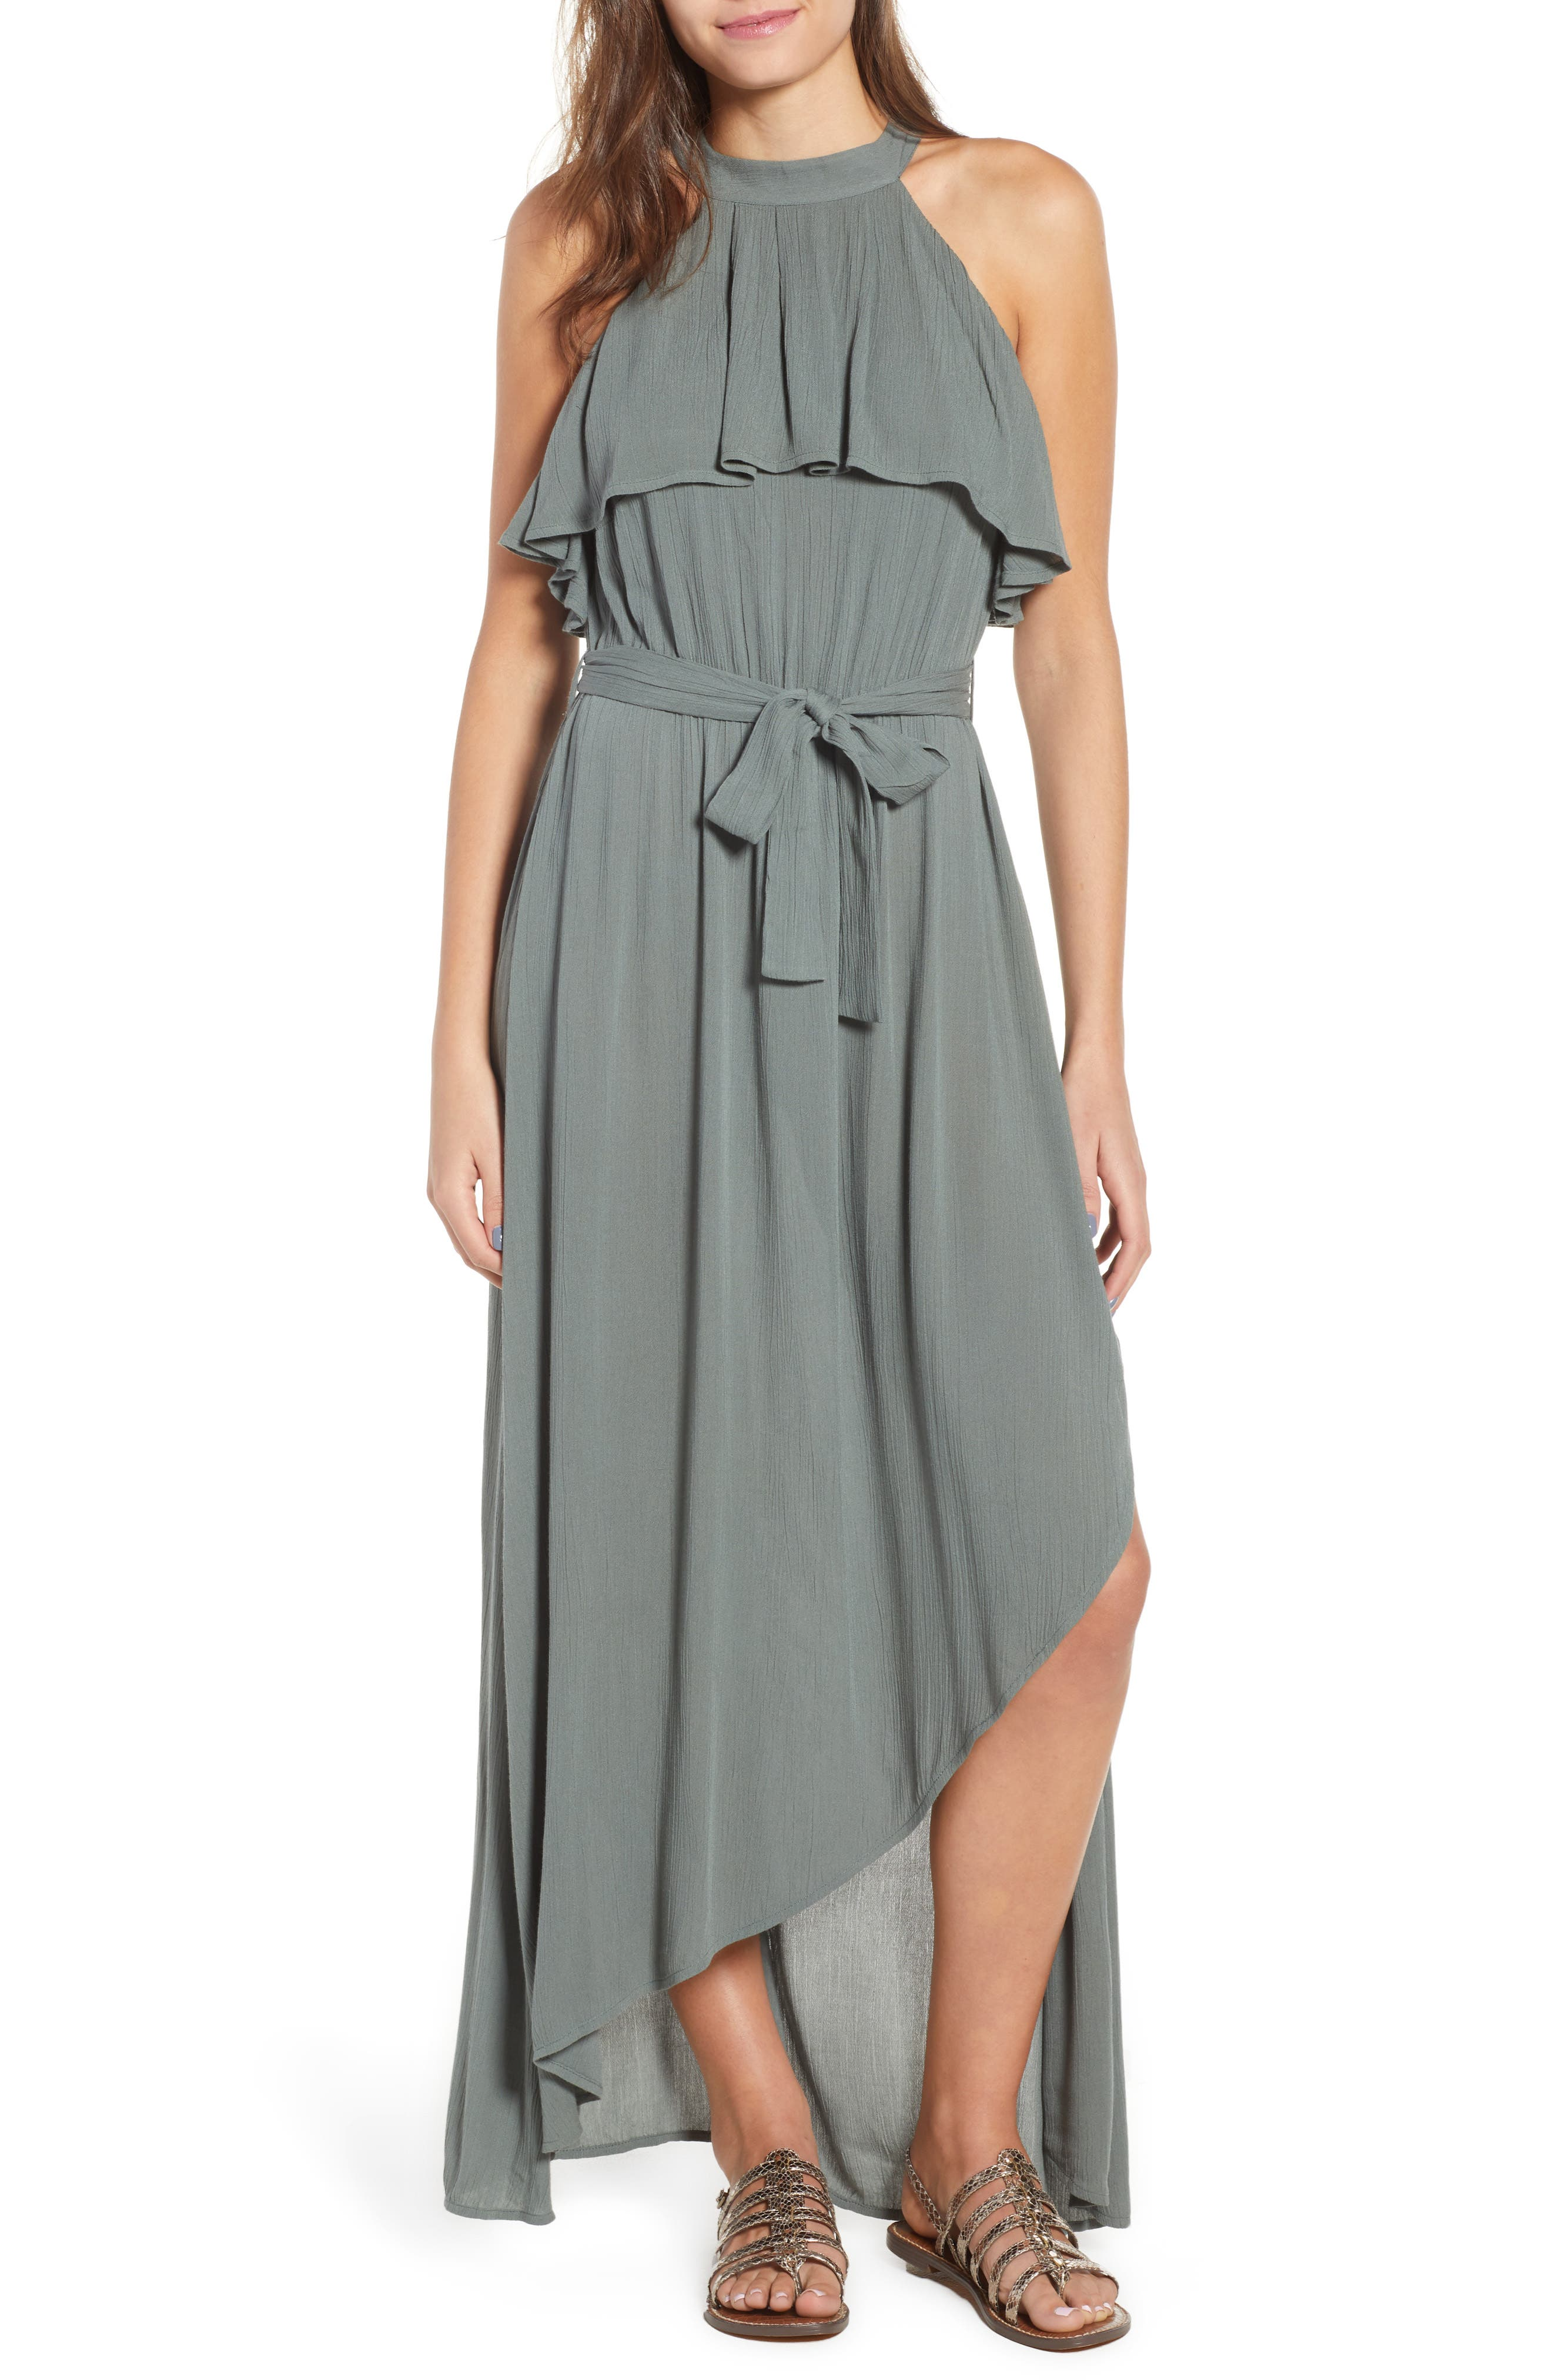 Misty Asymmetrical Dress,                             Main thumbnail 1, color,                             300